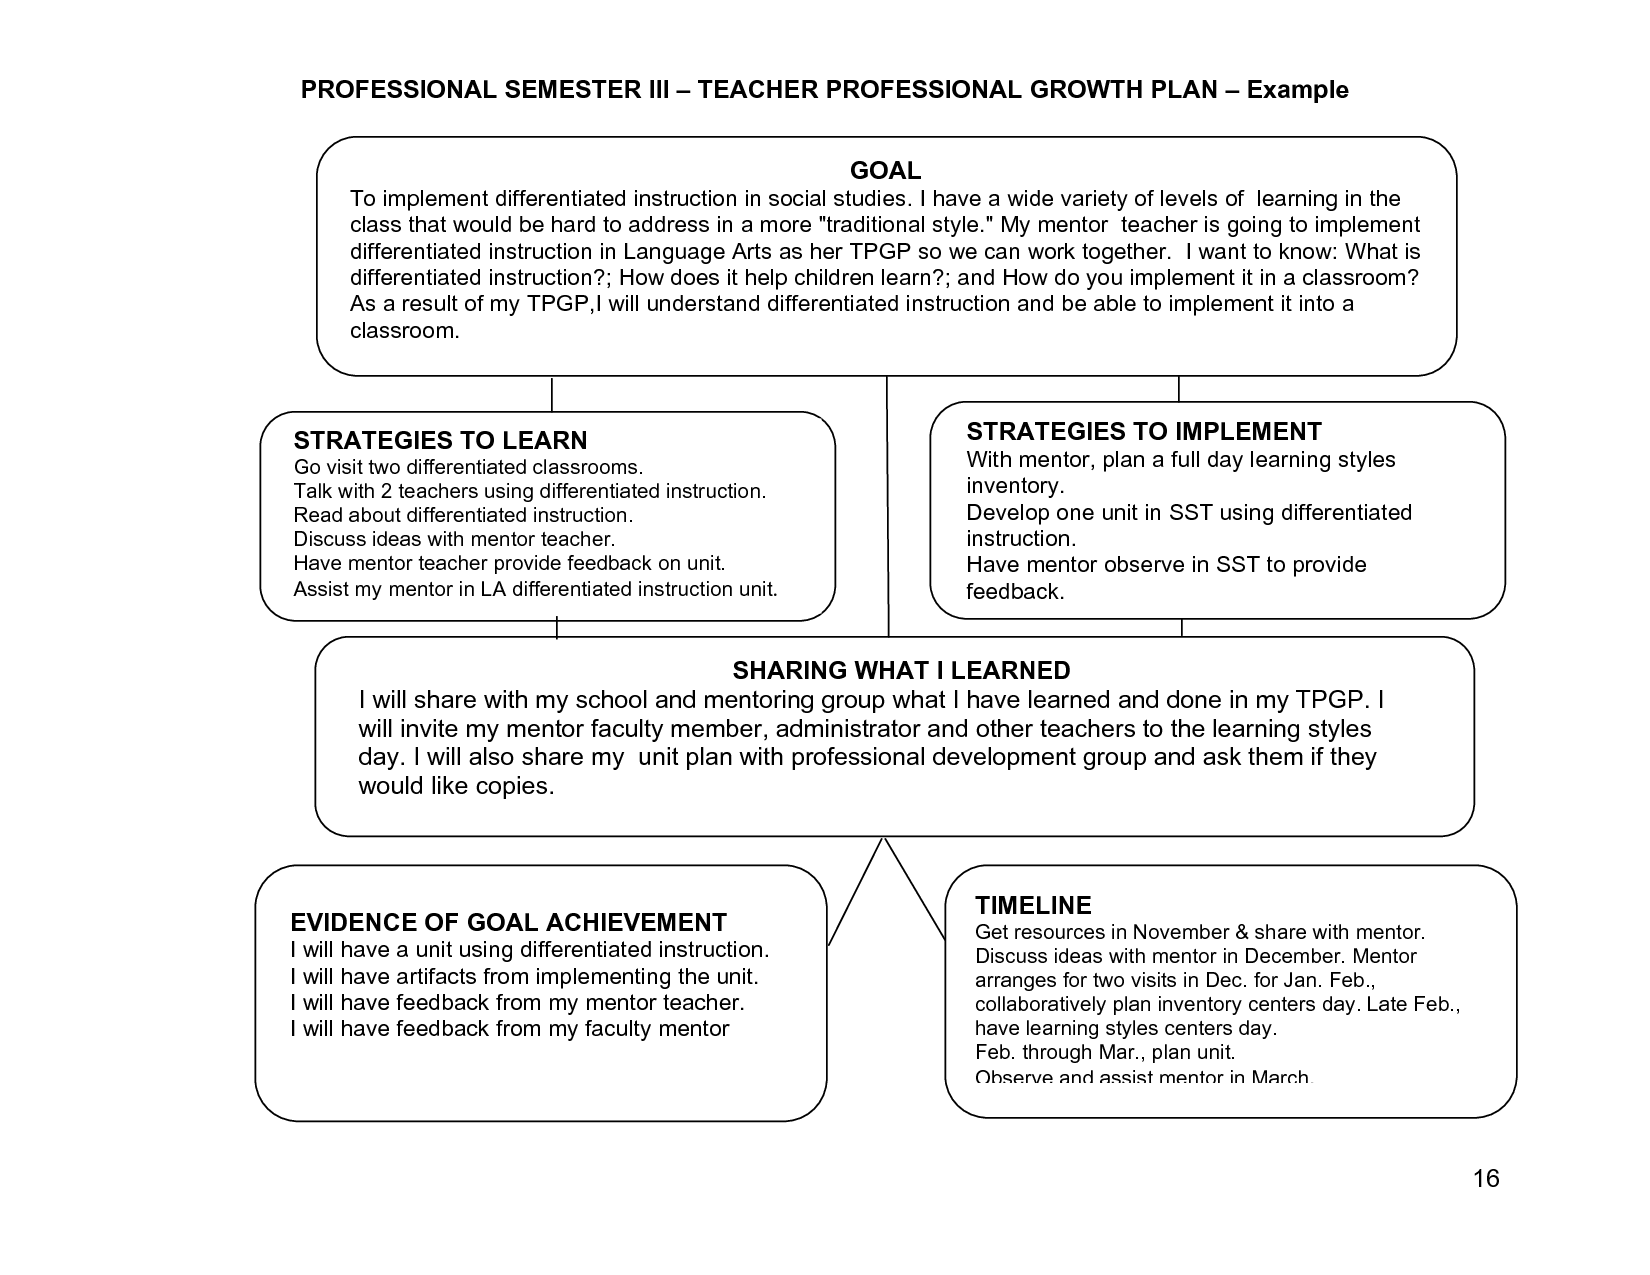 Learning Plans Or Goals For Teachers | ... SEMESTER III TEACHER PROFESSIONAL  GROWTH PLAN  Career Goal Examples